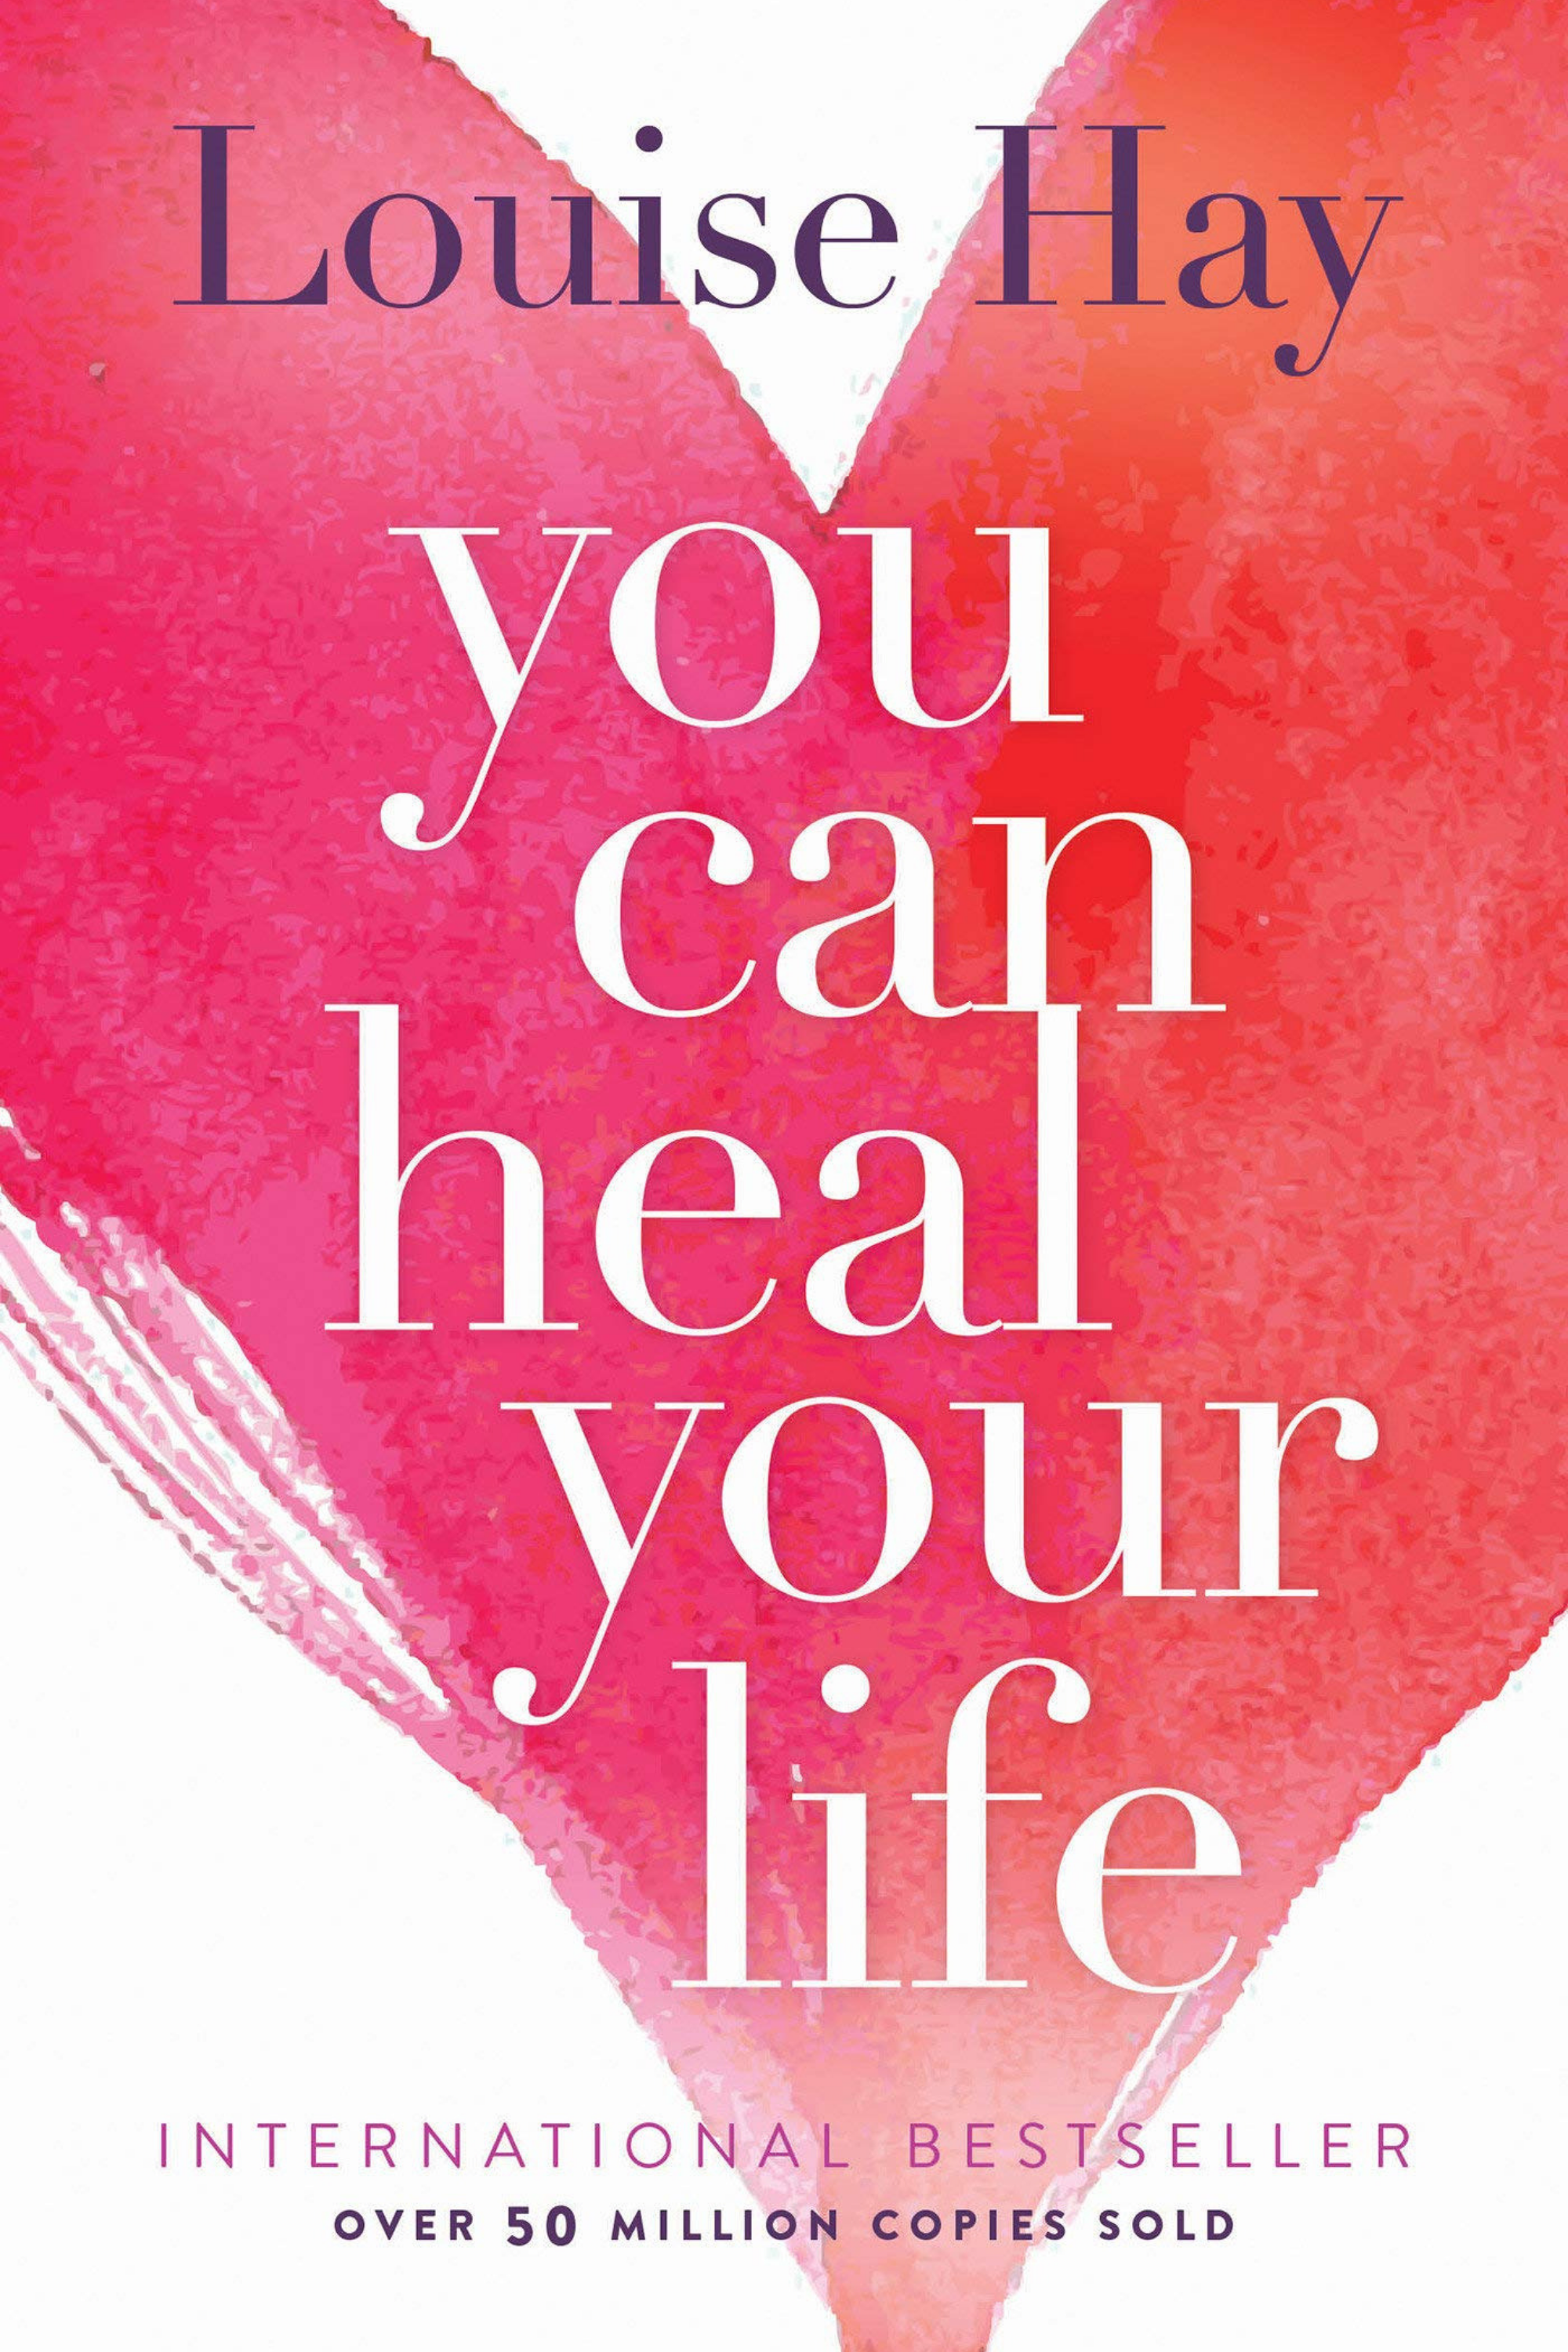 You Can Heal Your Life Louise Hay Courtney Elmer.png